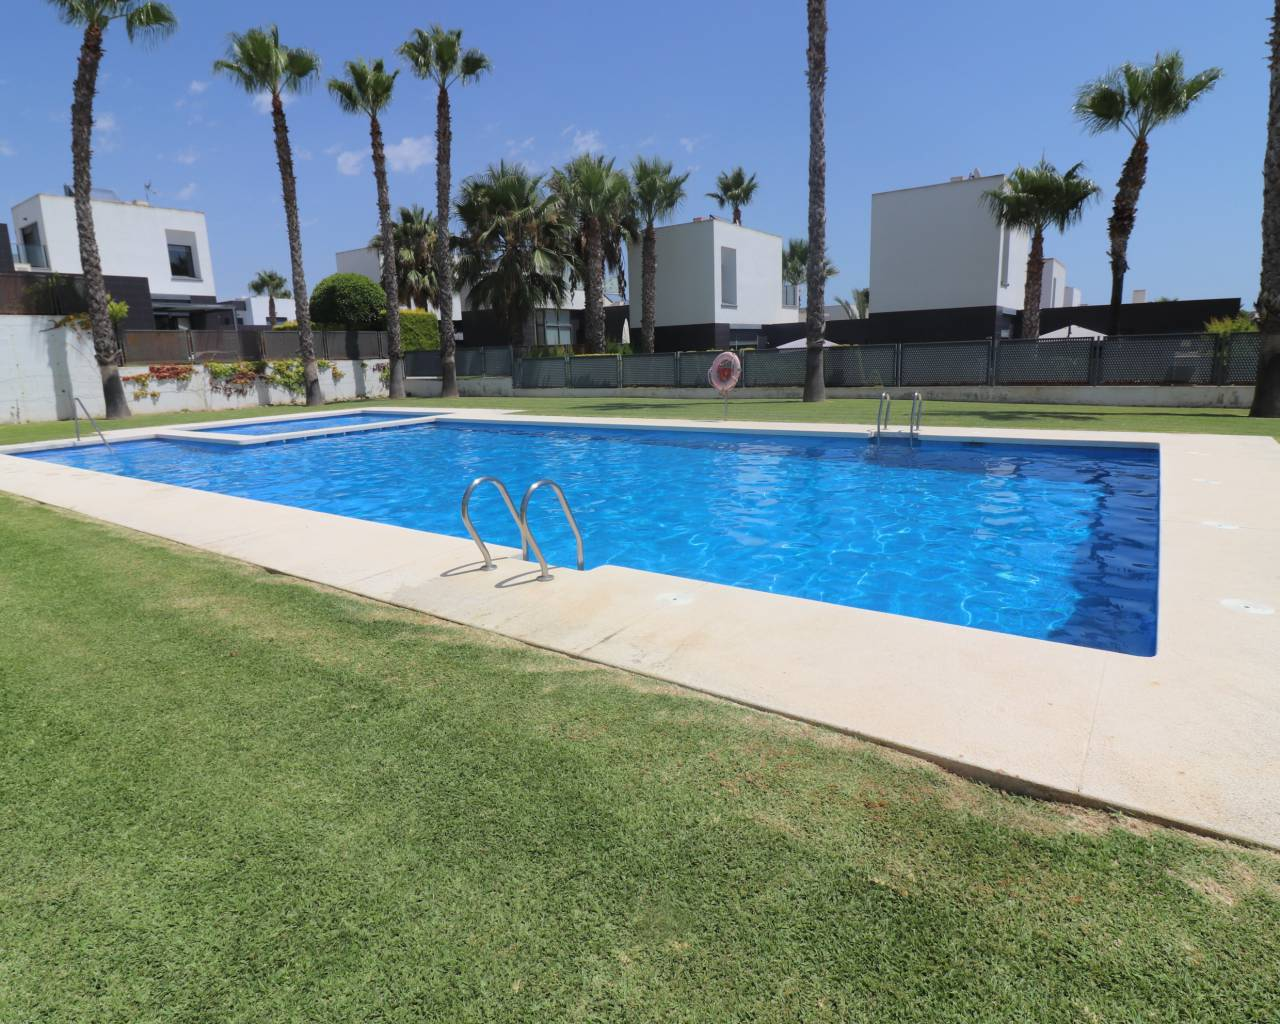 Sale - Bungalow - Algorfa - La Finca Golf Resort